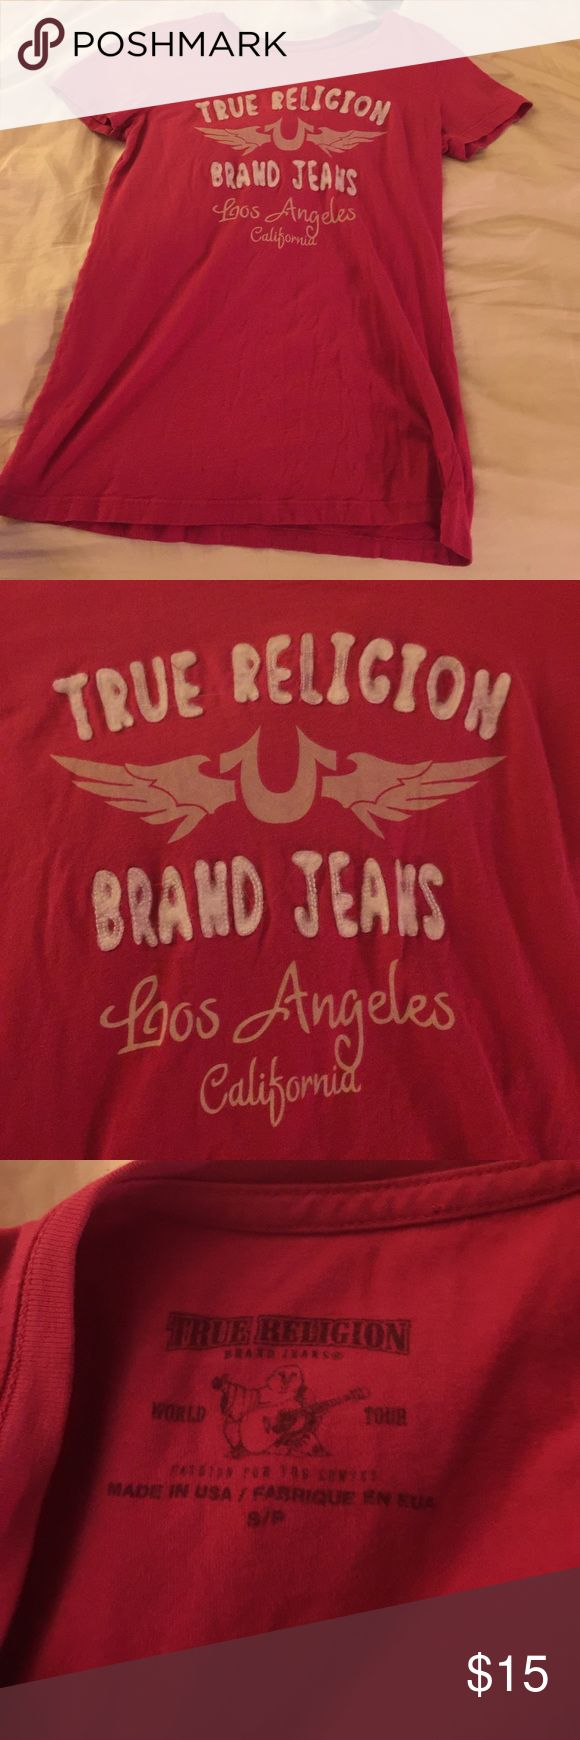 True religion t shirt Previously loved true religion t shirt size small True Religion Tops Tees - Short Sleeve